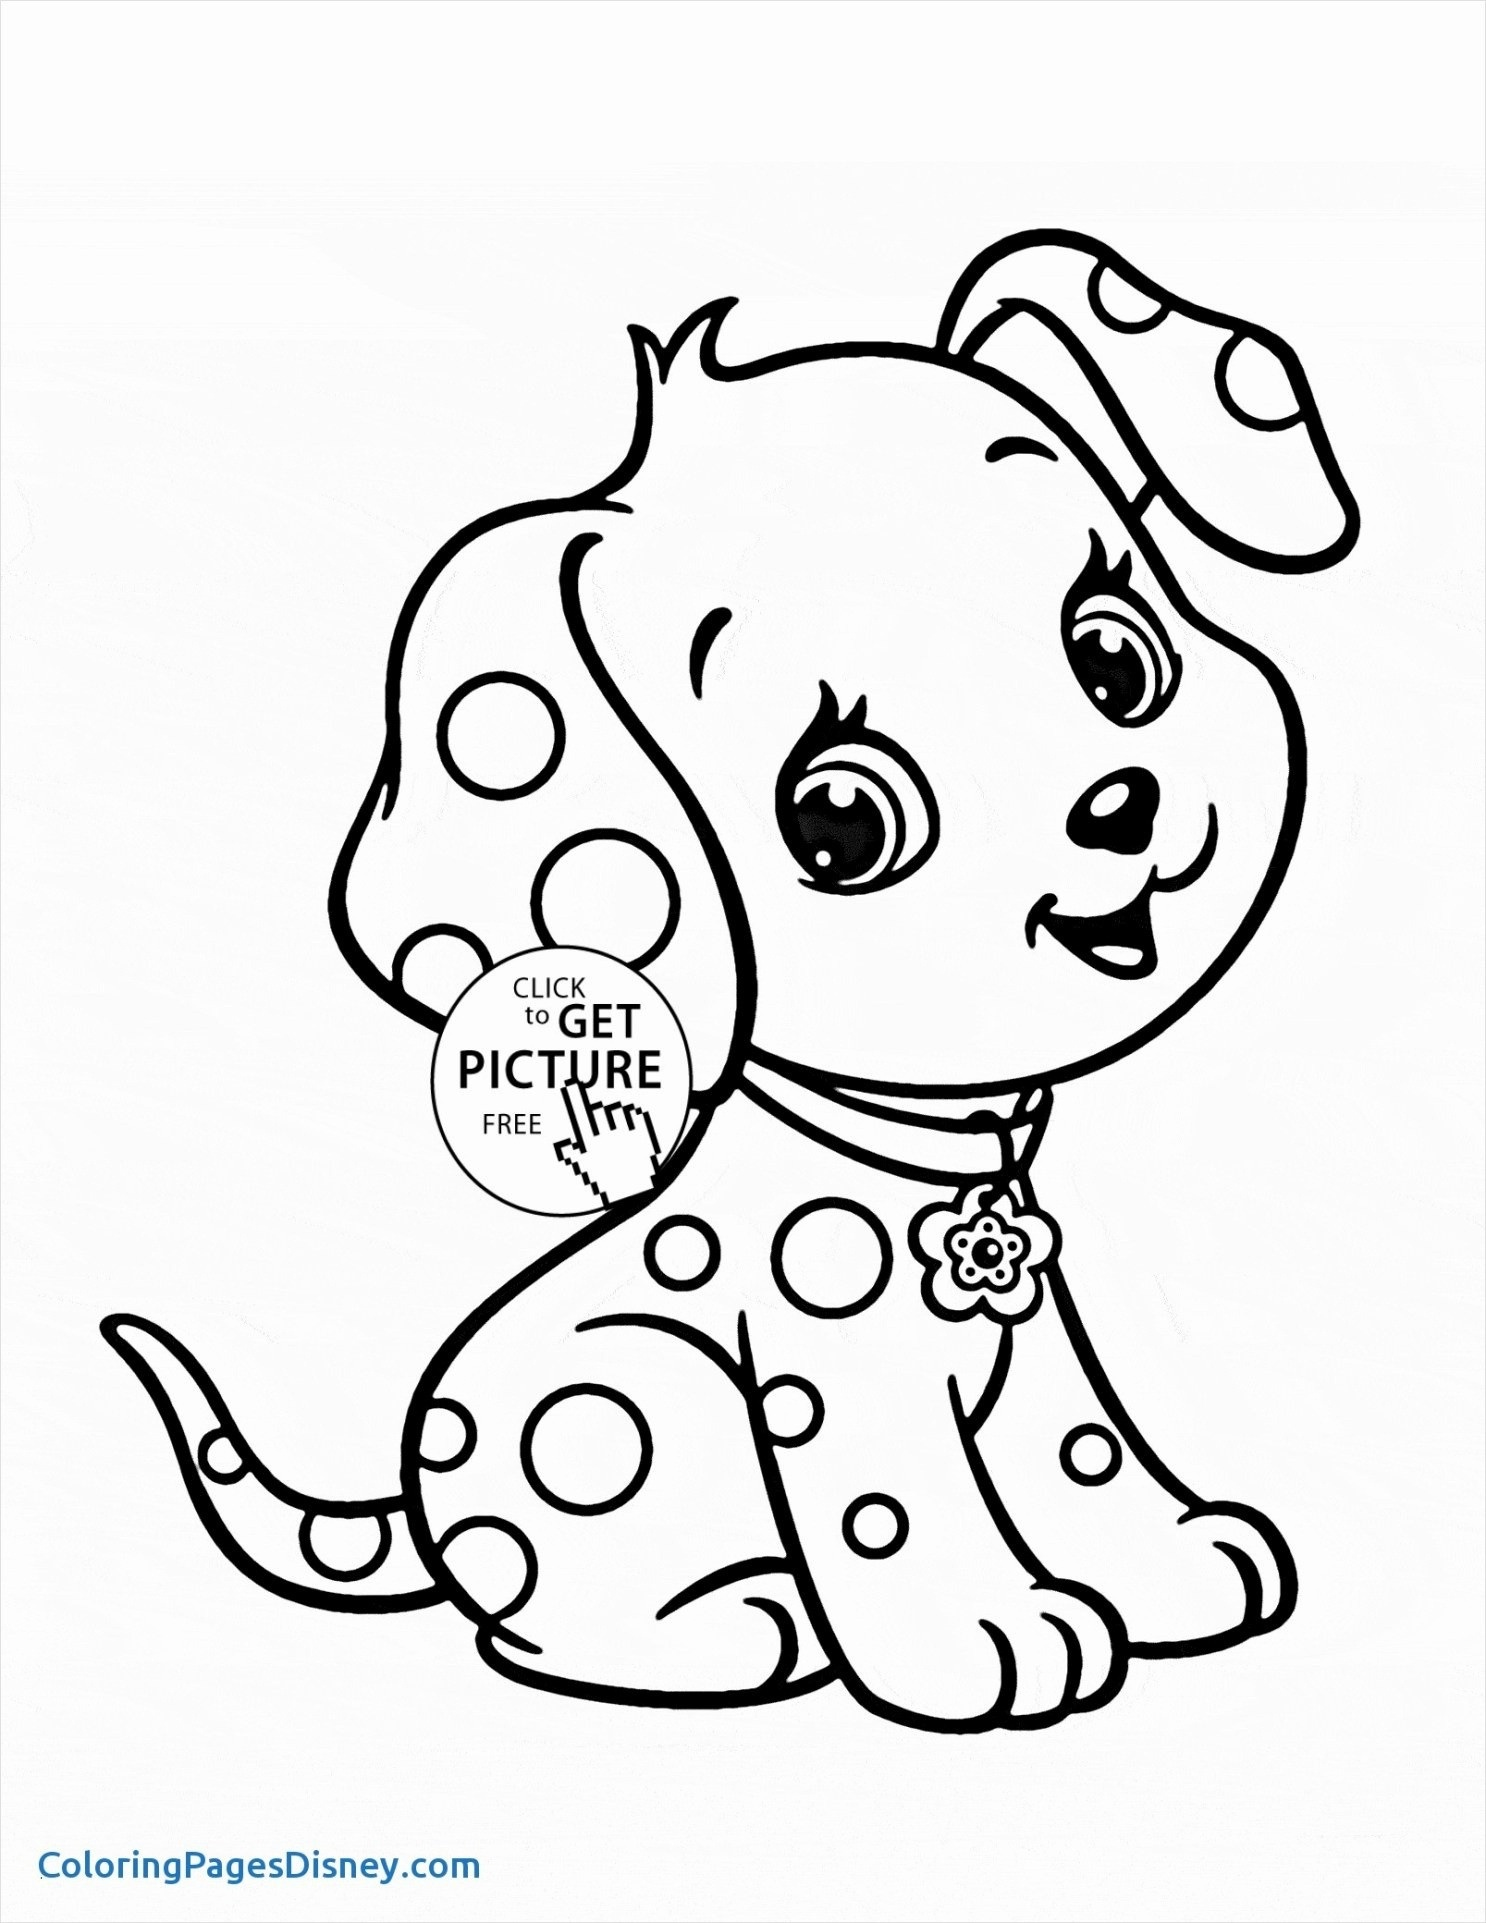 Coloring Page ~ Coloring Book Pdf Page Coloring Car Support - Free Printable Coloring Books Pdf